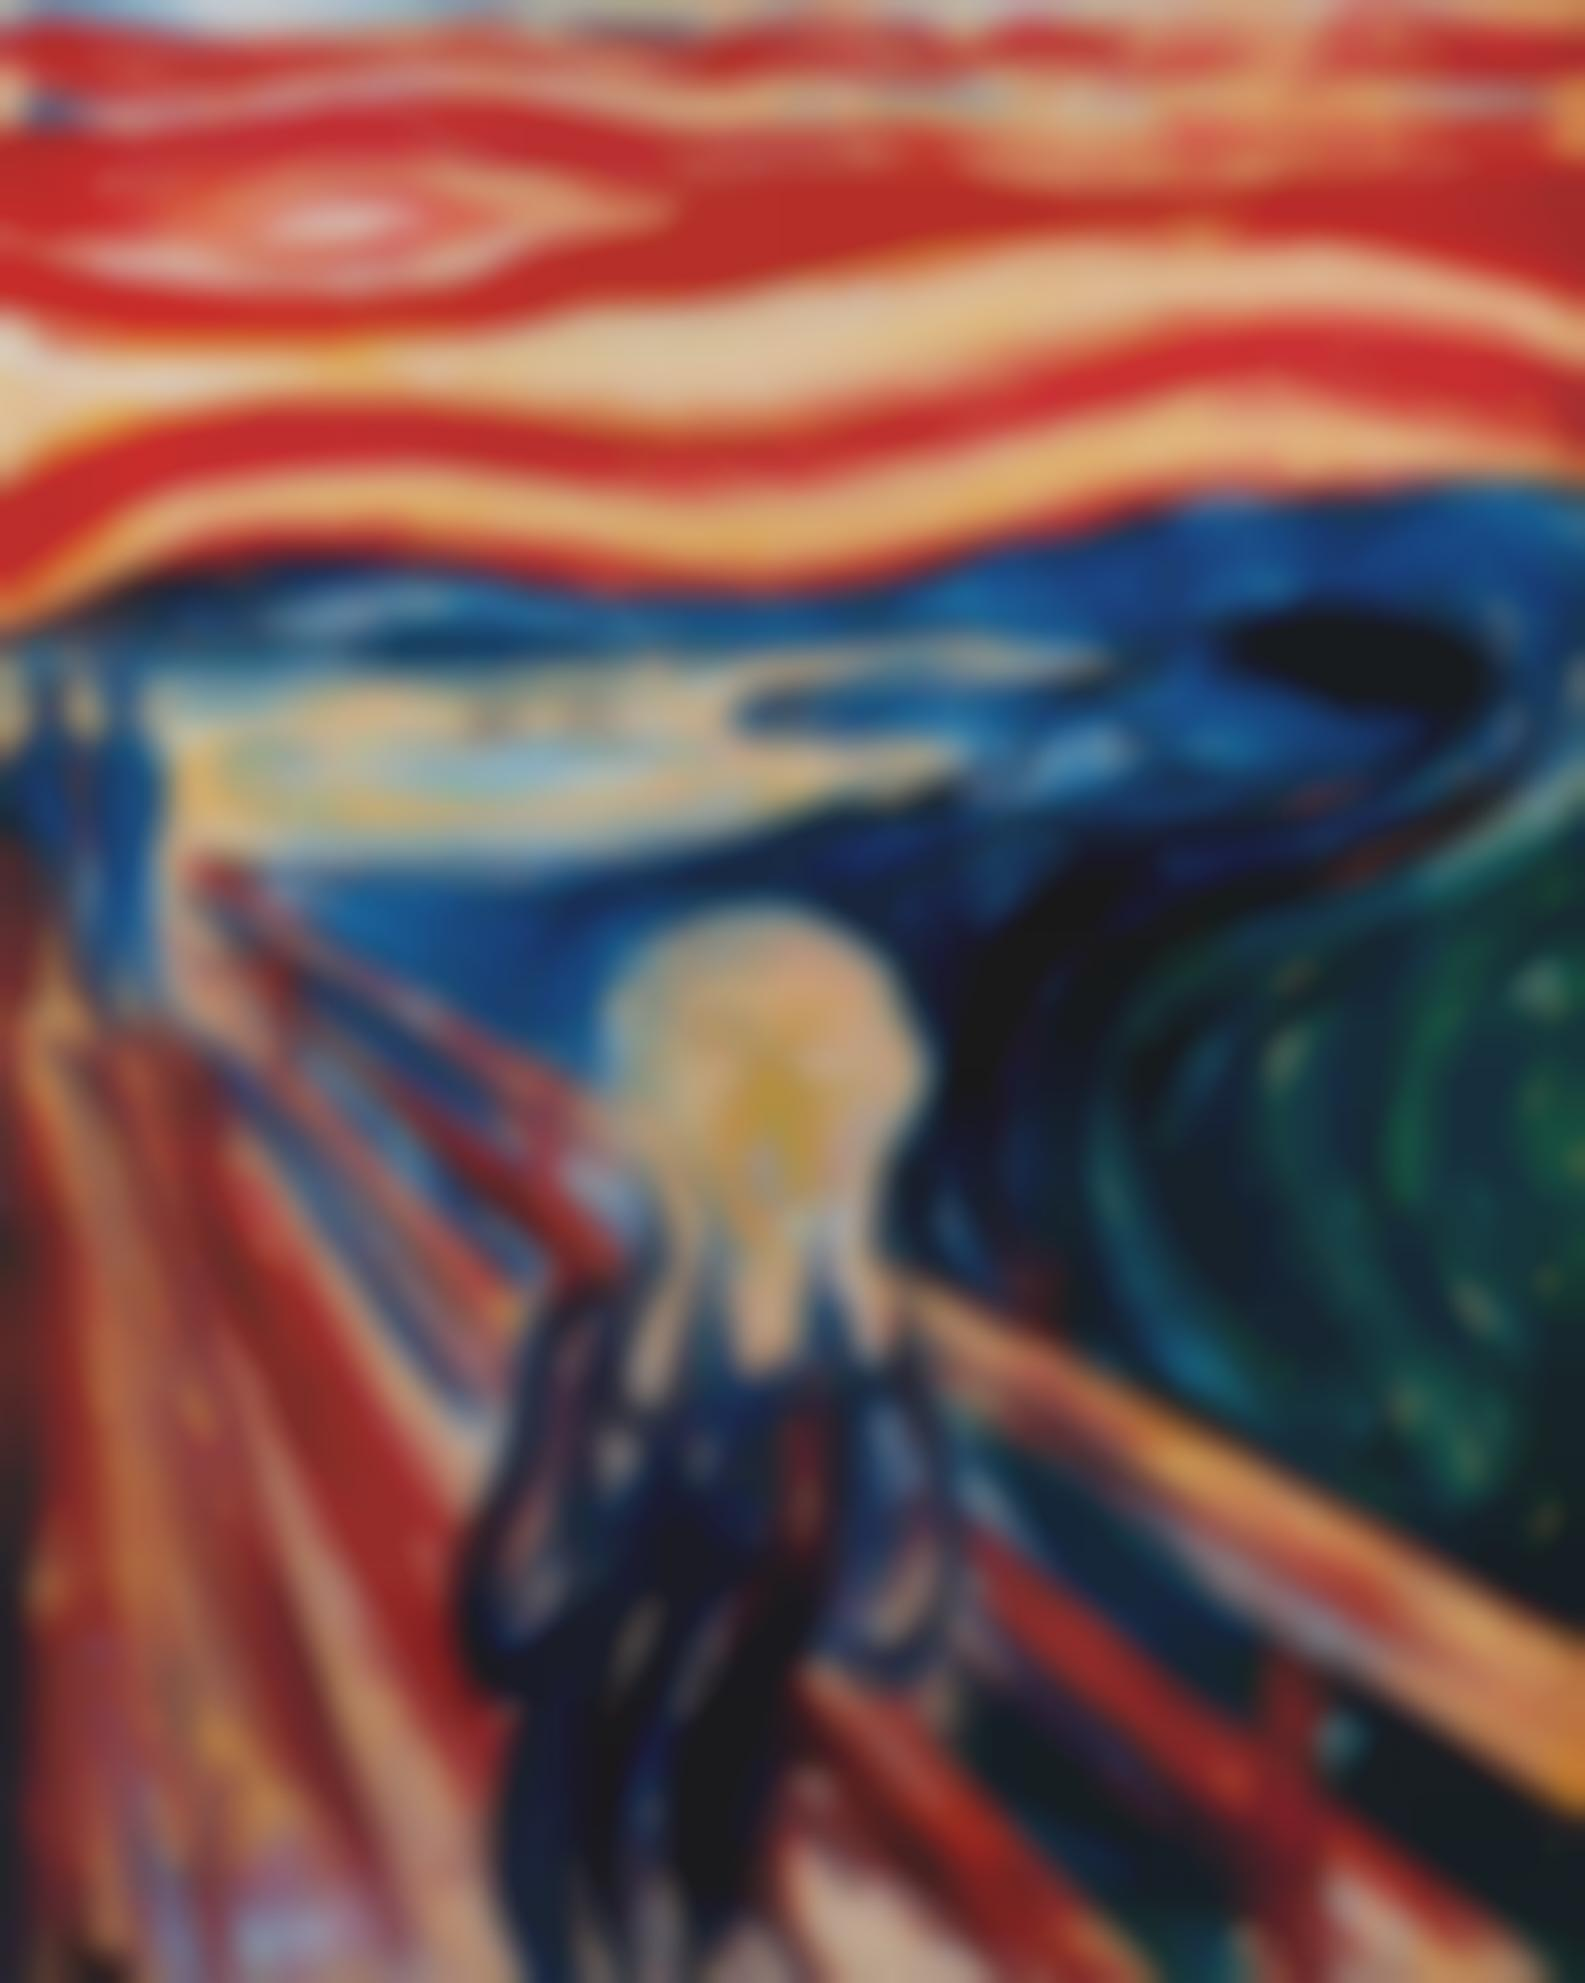 The Scream, After Edvard Munch From Pictures Of Pigment